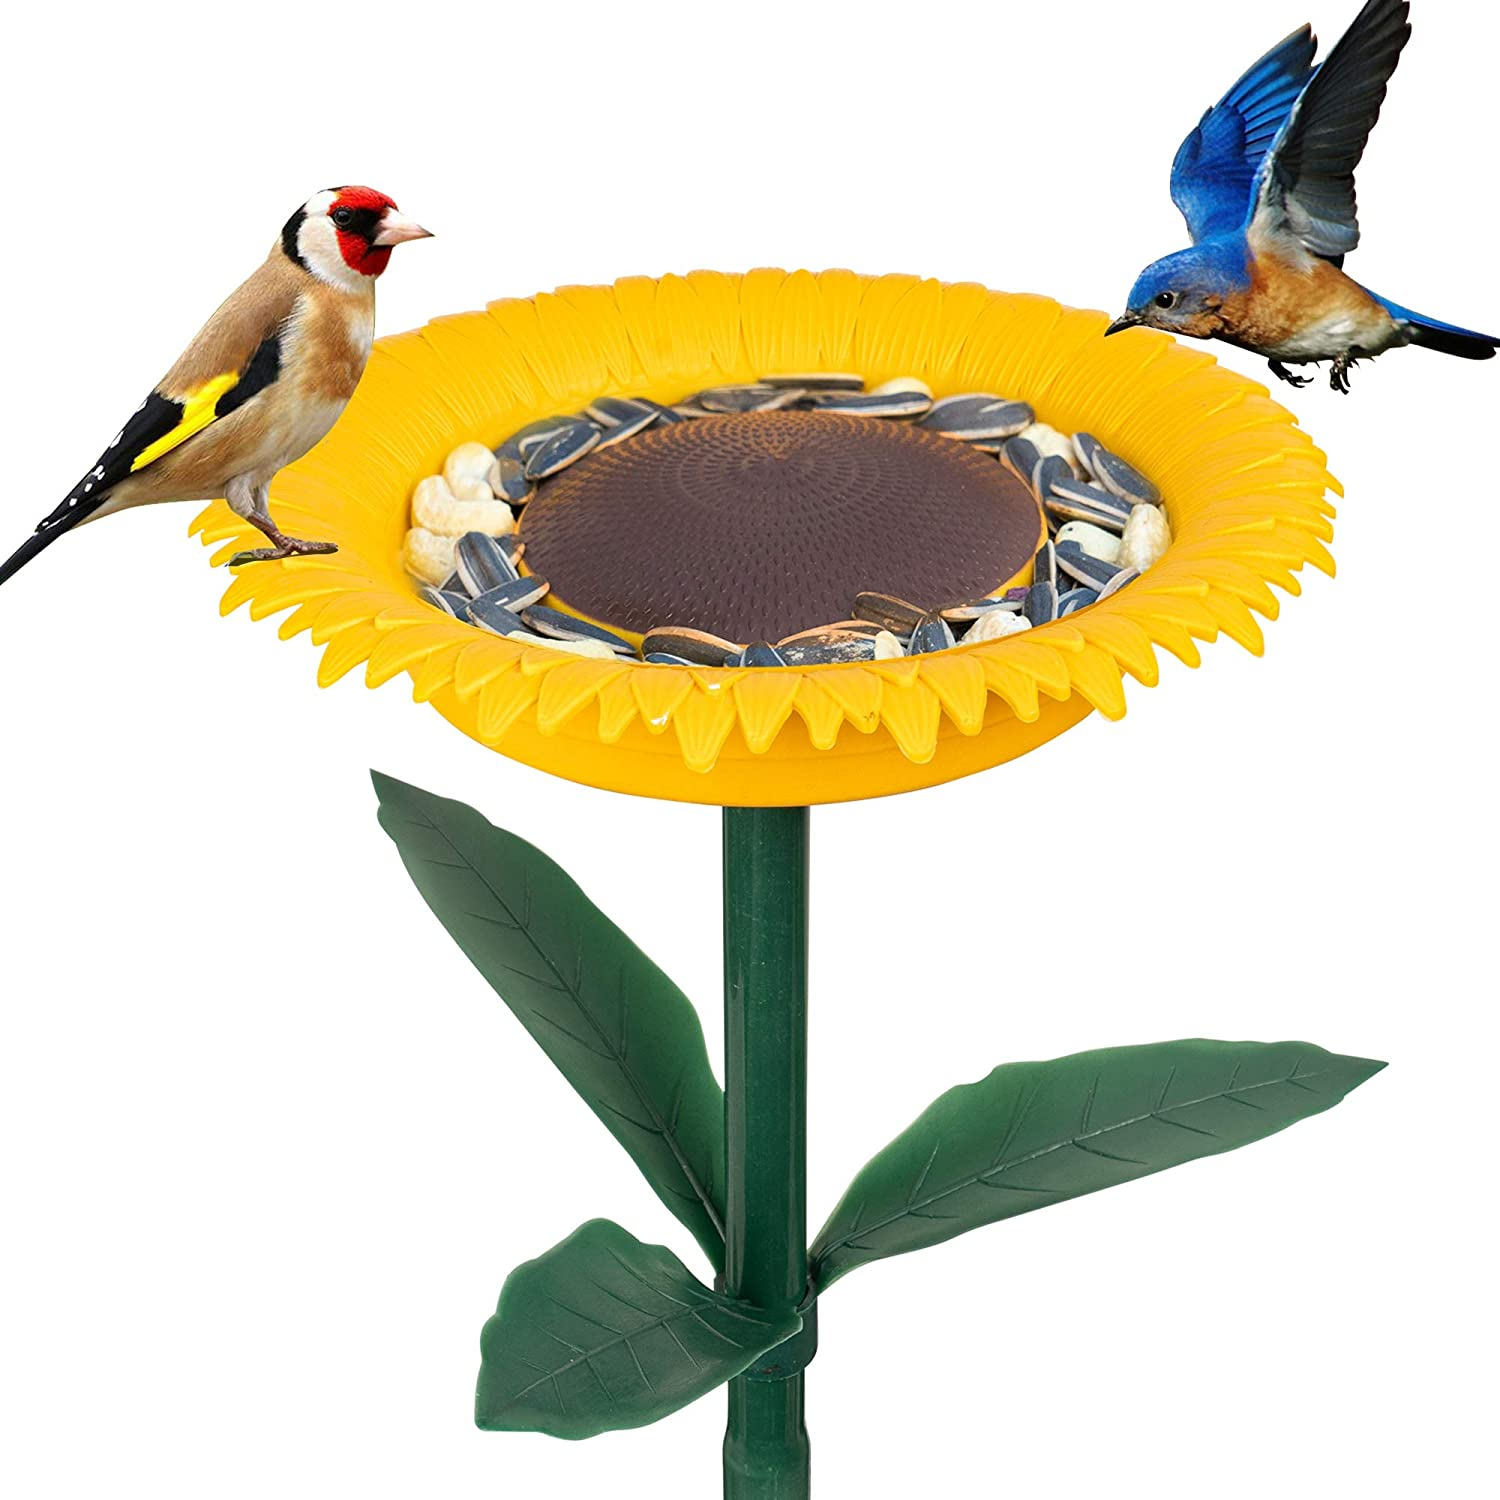 FUNPENY Wild Bird Feeder and Bath for Outside, Garden Hummingbirds Standing Bowl Bath Sunflower Bird feeders Stakes Decor for Outdoors,Yard Decorations